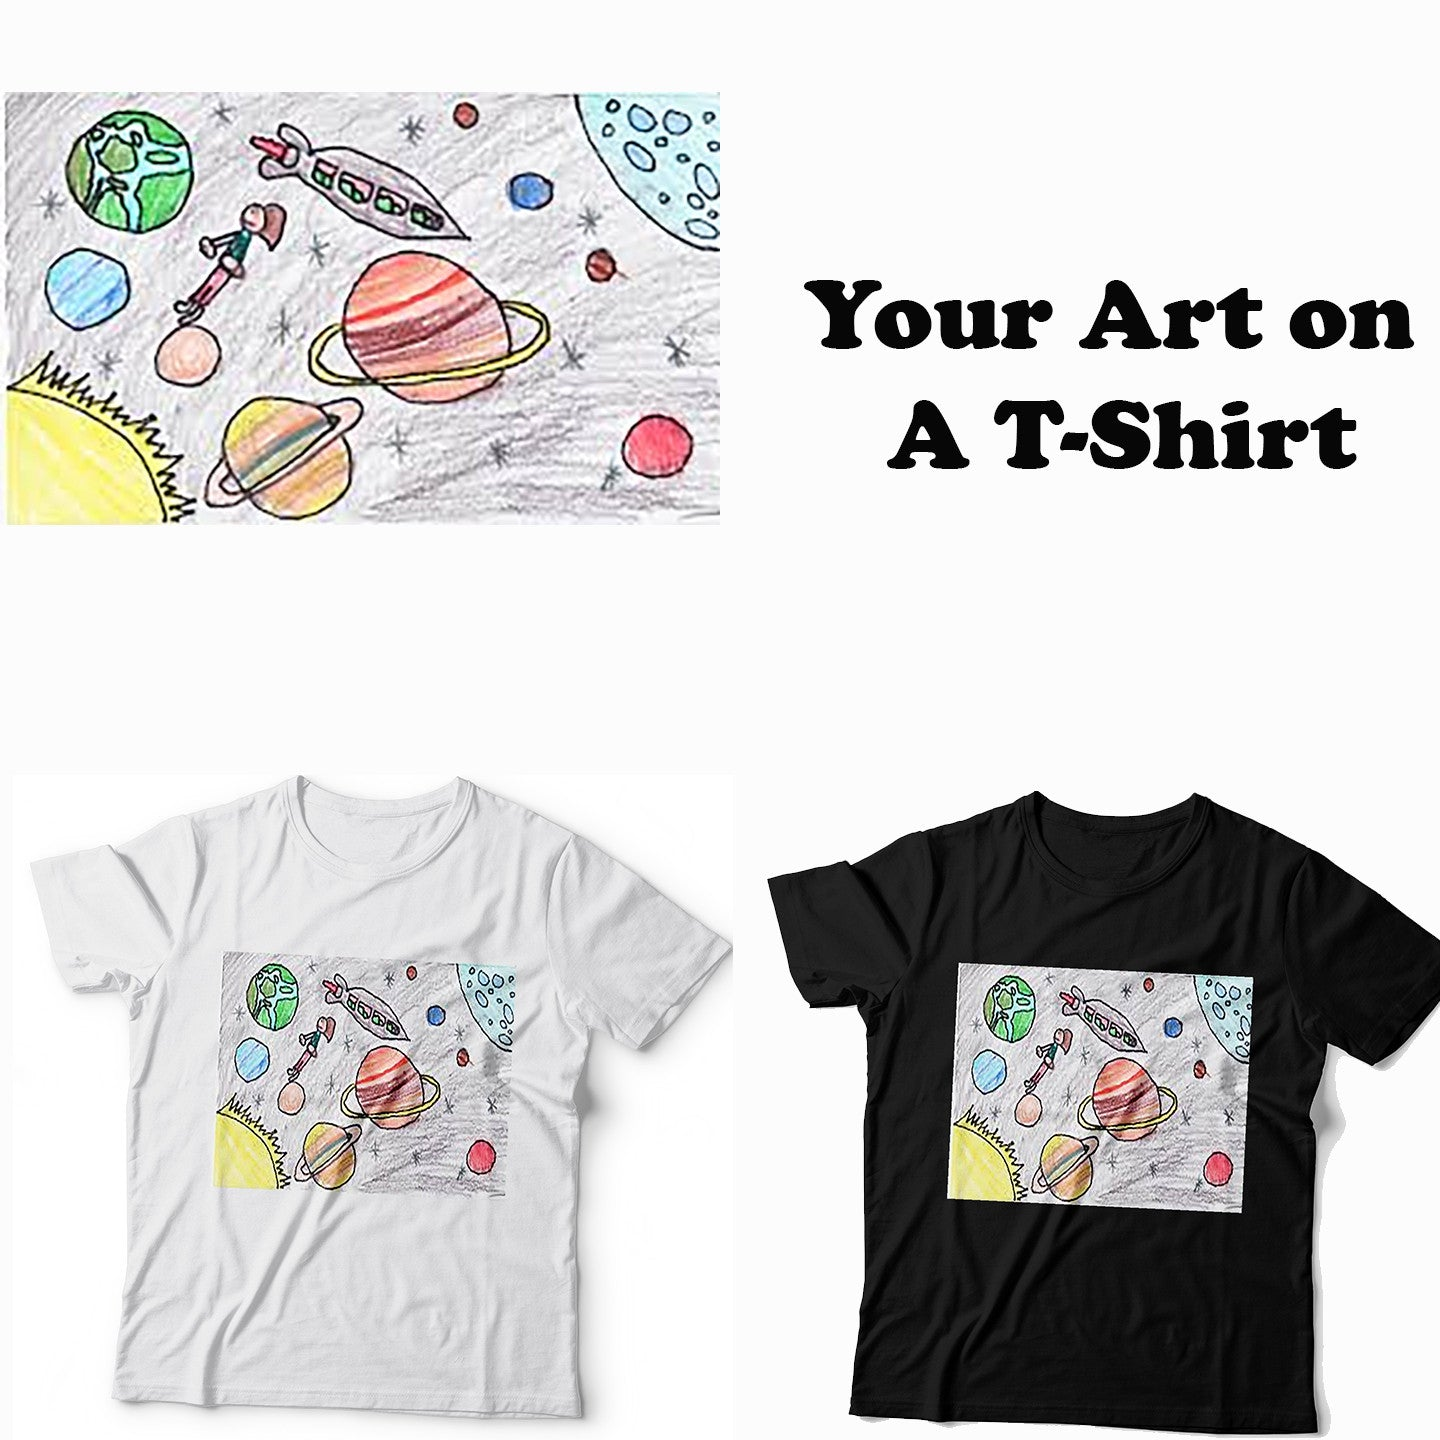 Your Art on A T-Shirt - Roses & Rhinos